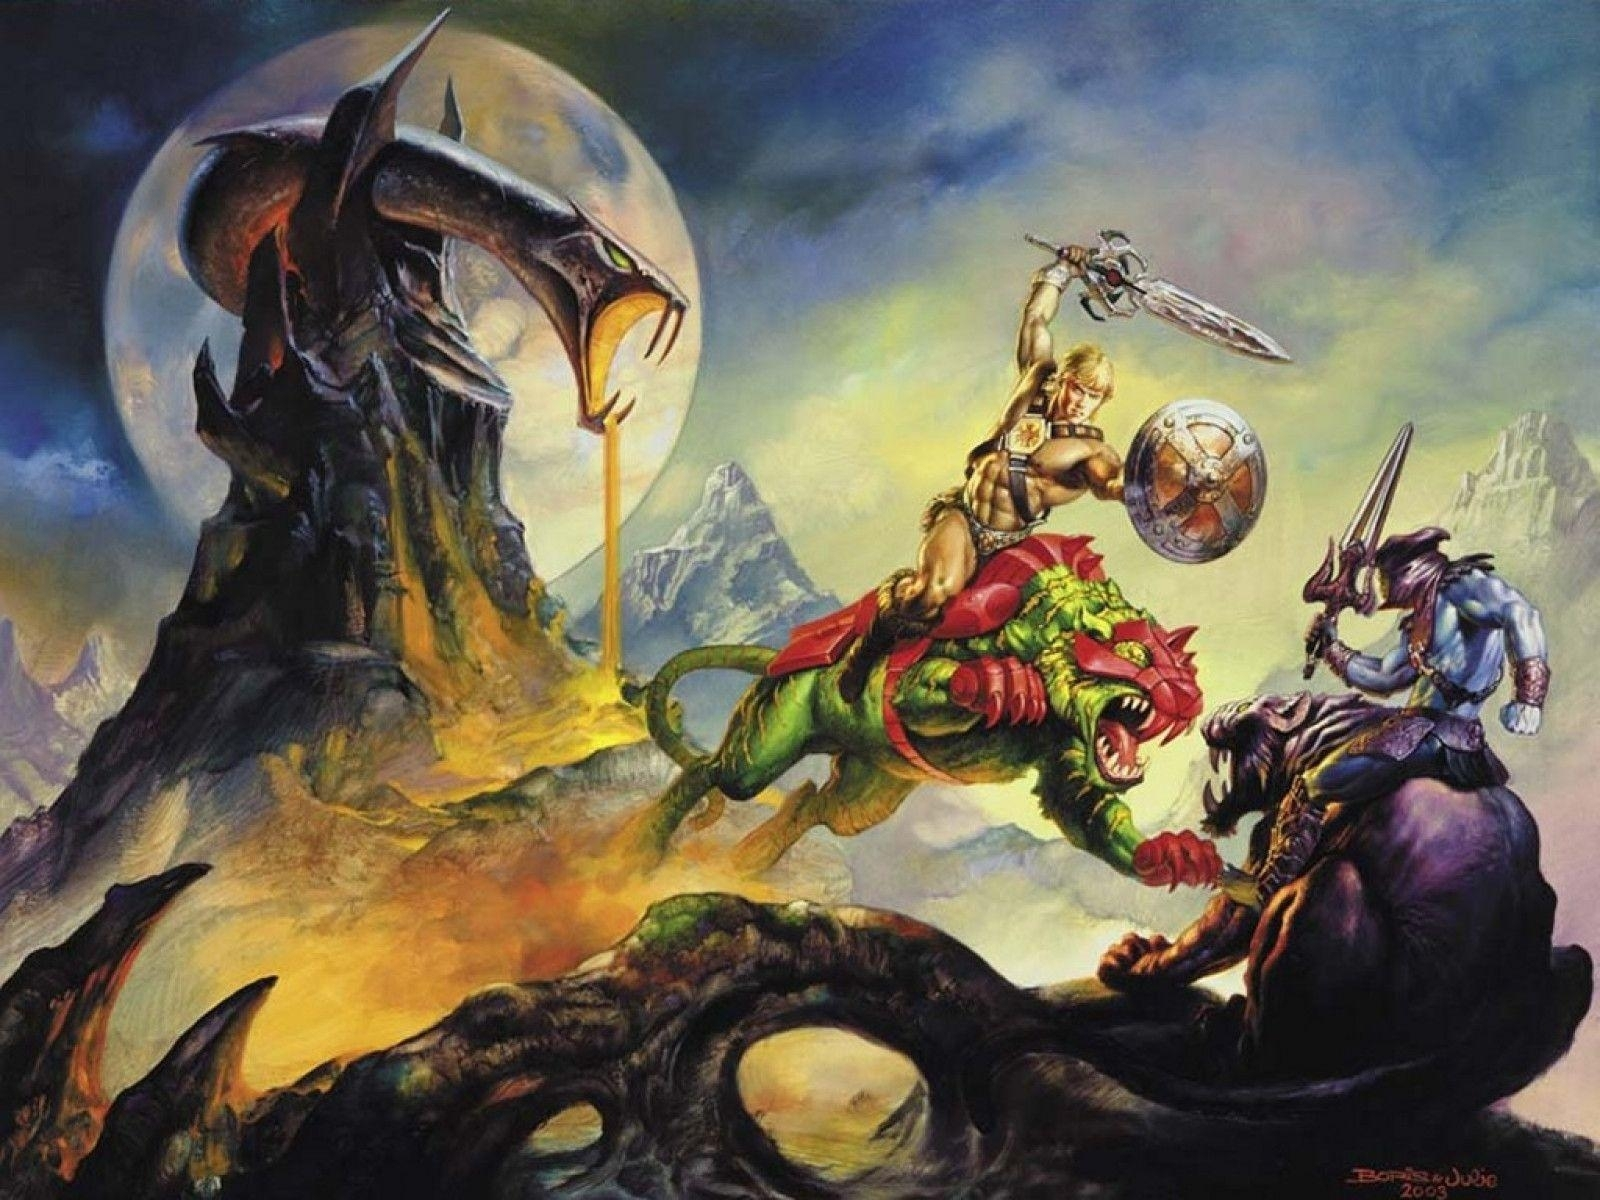 he-man wallpapers - wallpaper cave